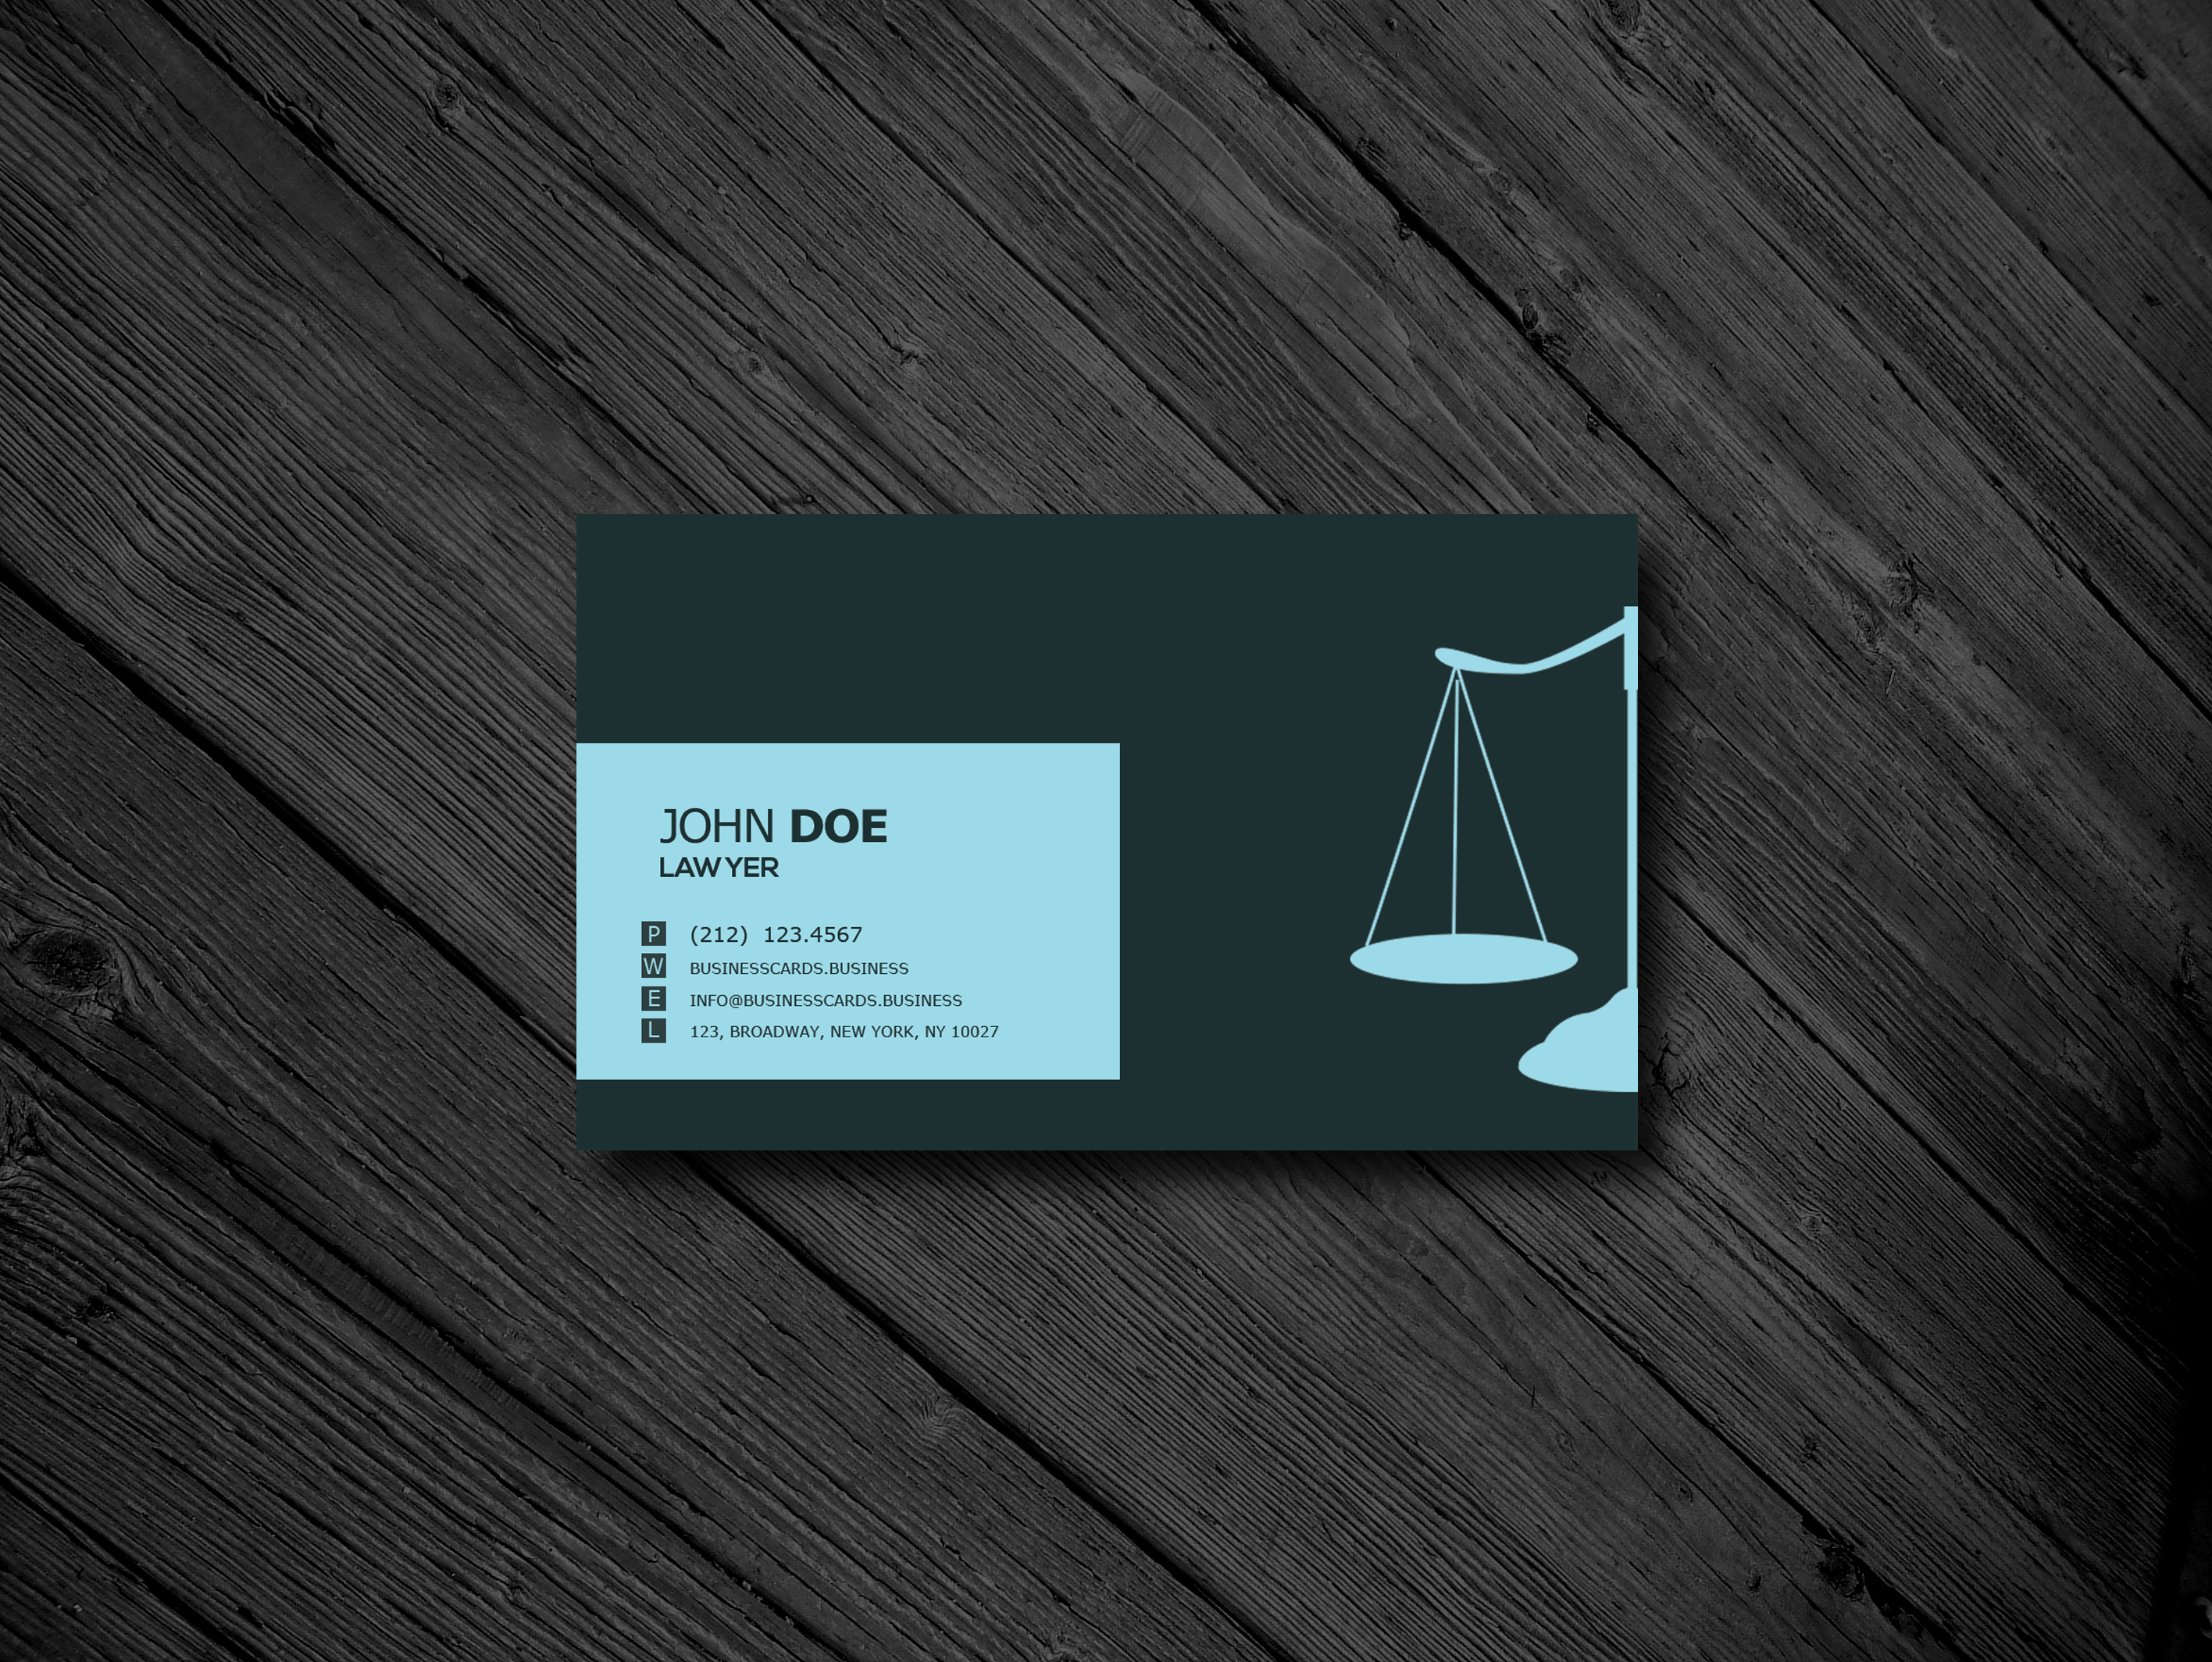 Free business card templates business cards templates free lawyer business card psd template fbccfo Choice Image